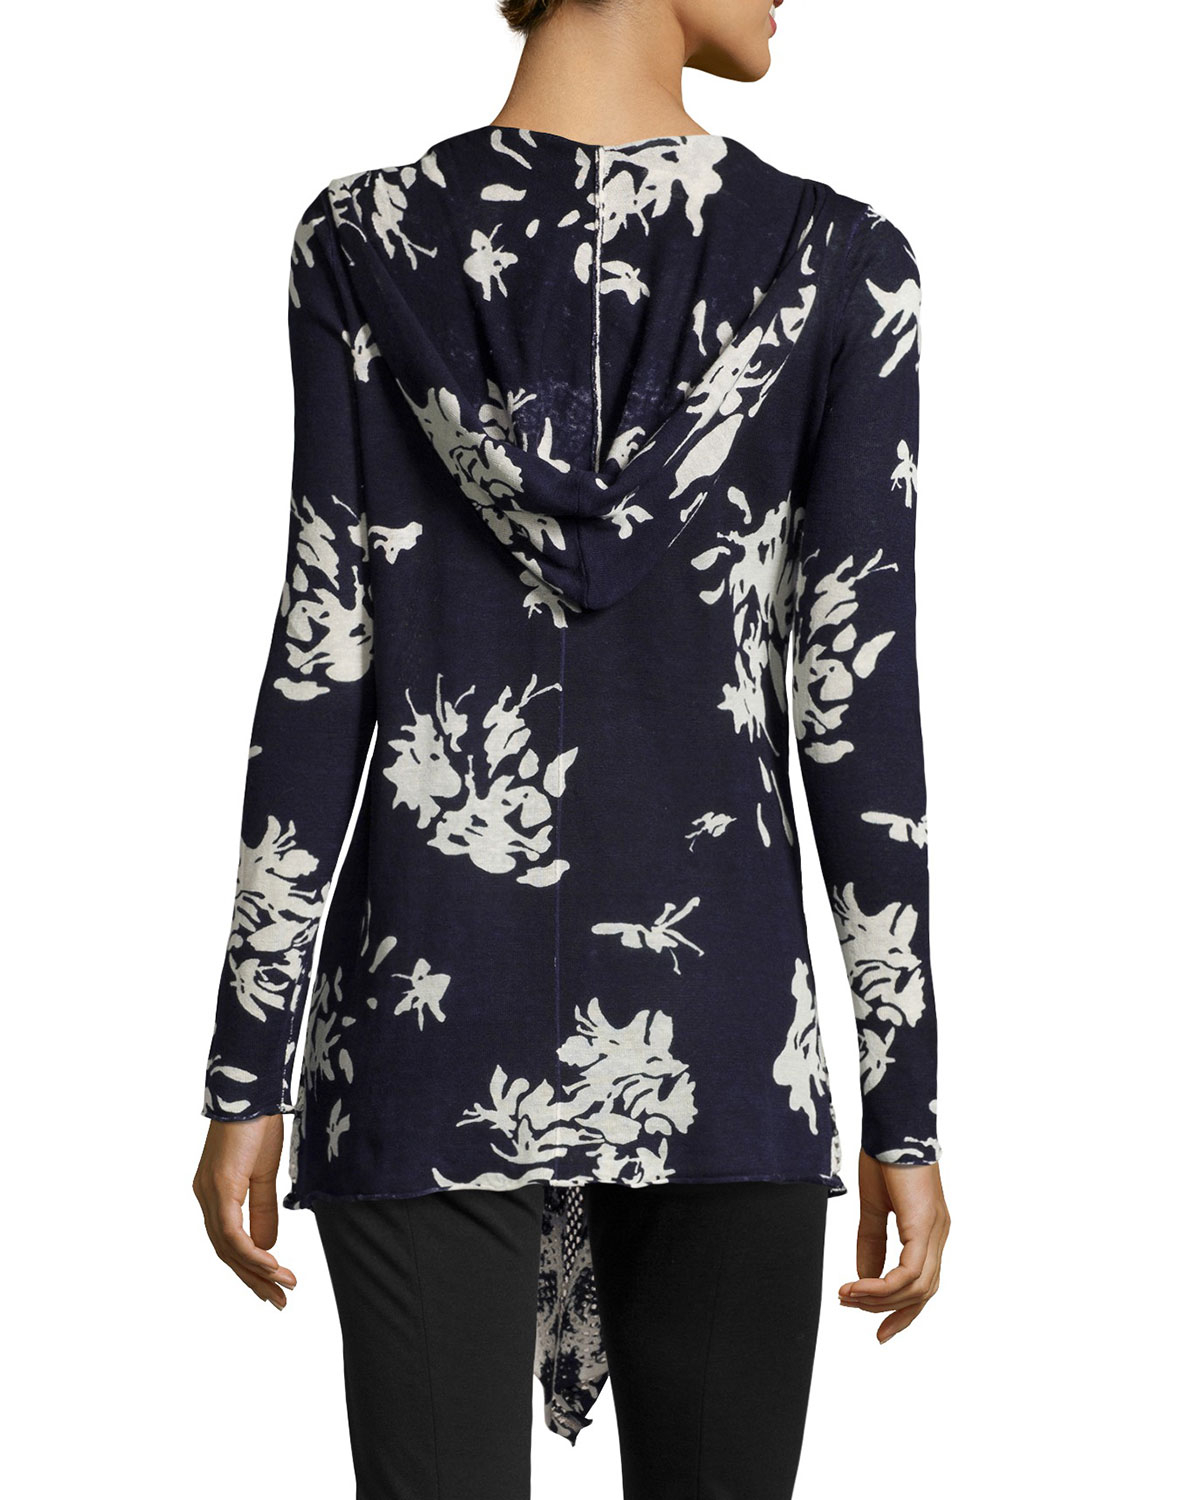 Neiman marcus Draped Floral-print Hooded Cardigan in Blue | Lyst